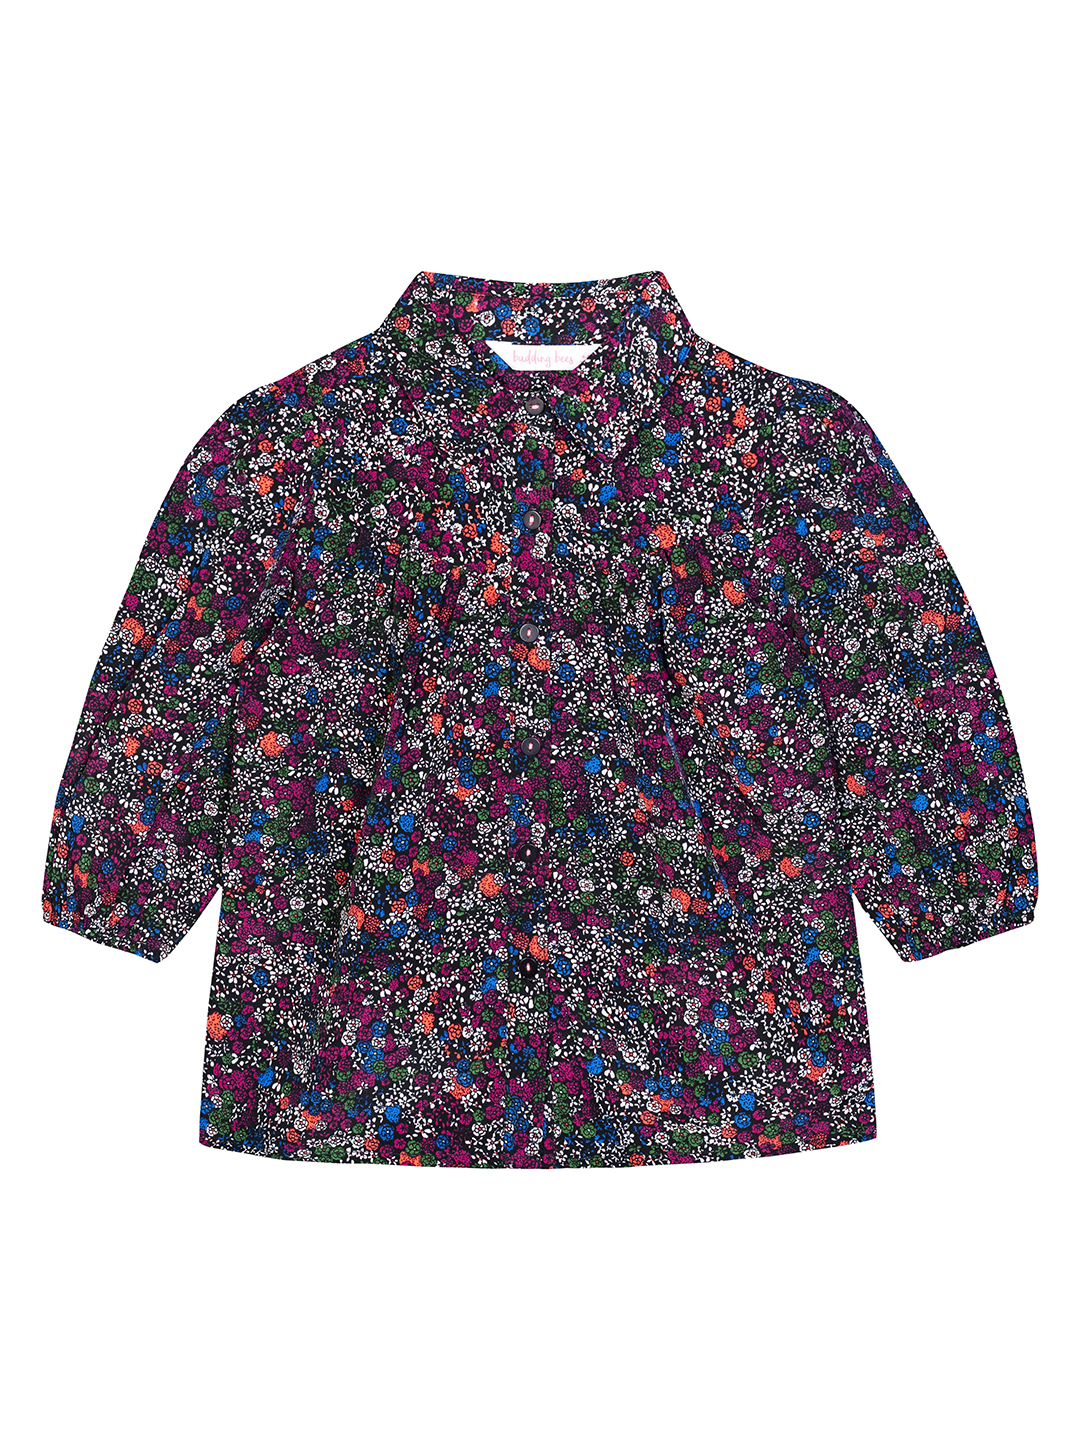 Budding Bees | Budding Bees Girls Multi Floral Top